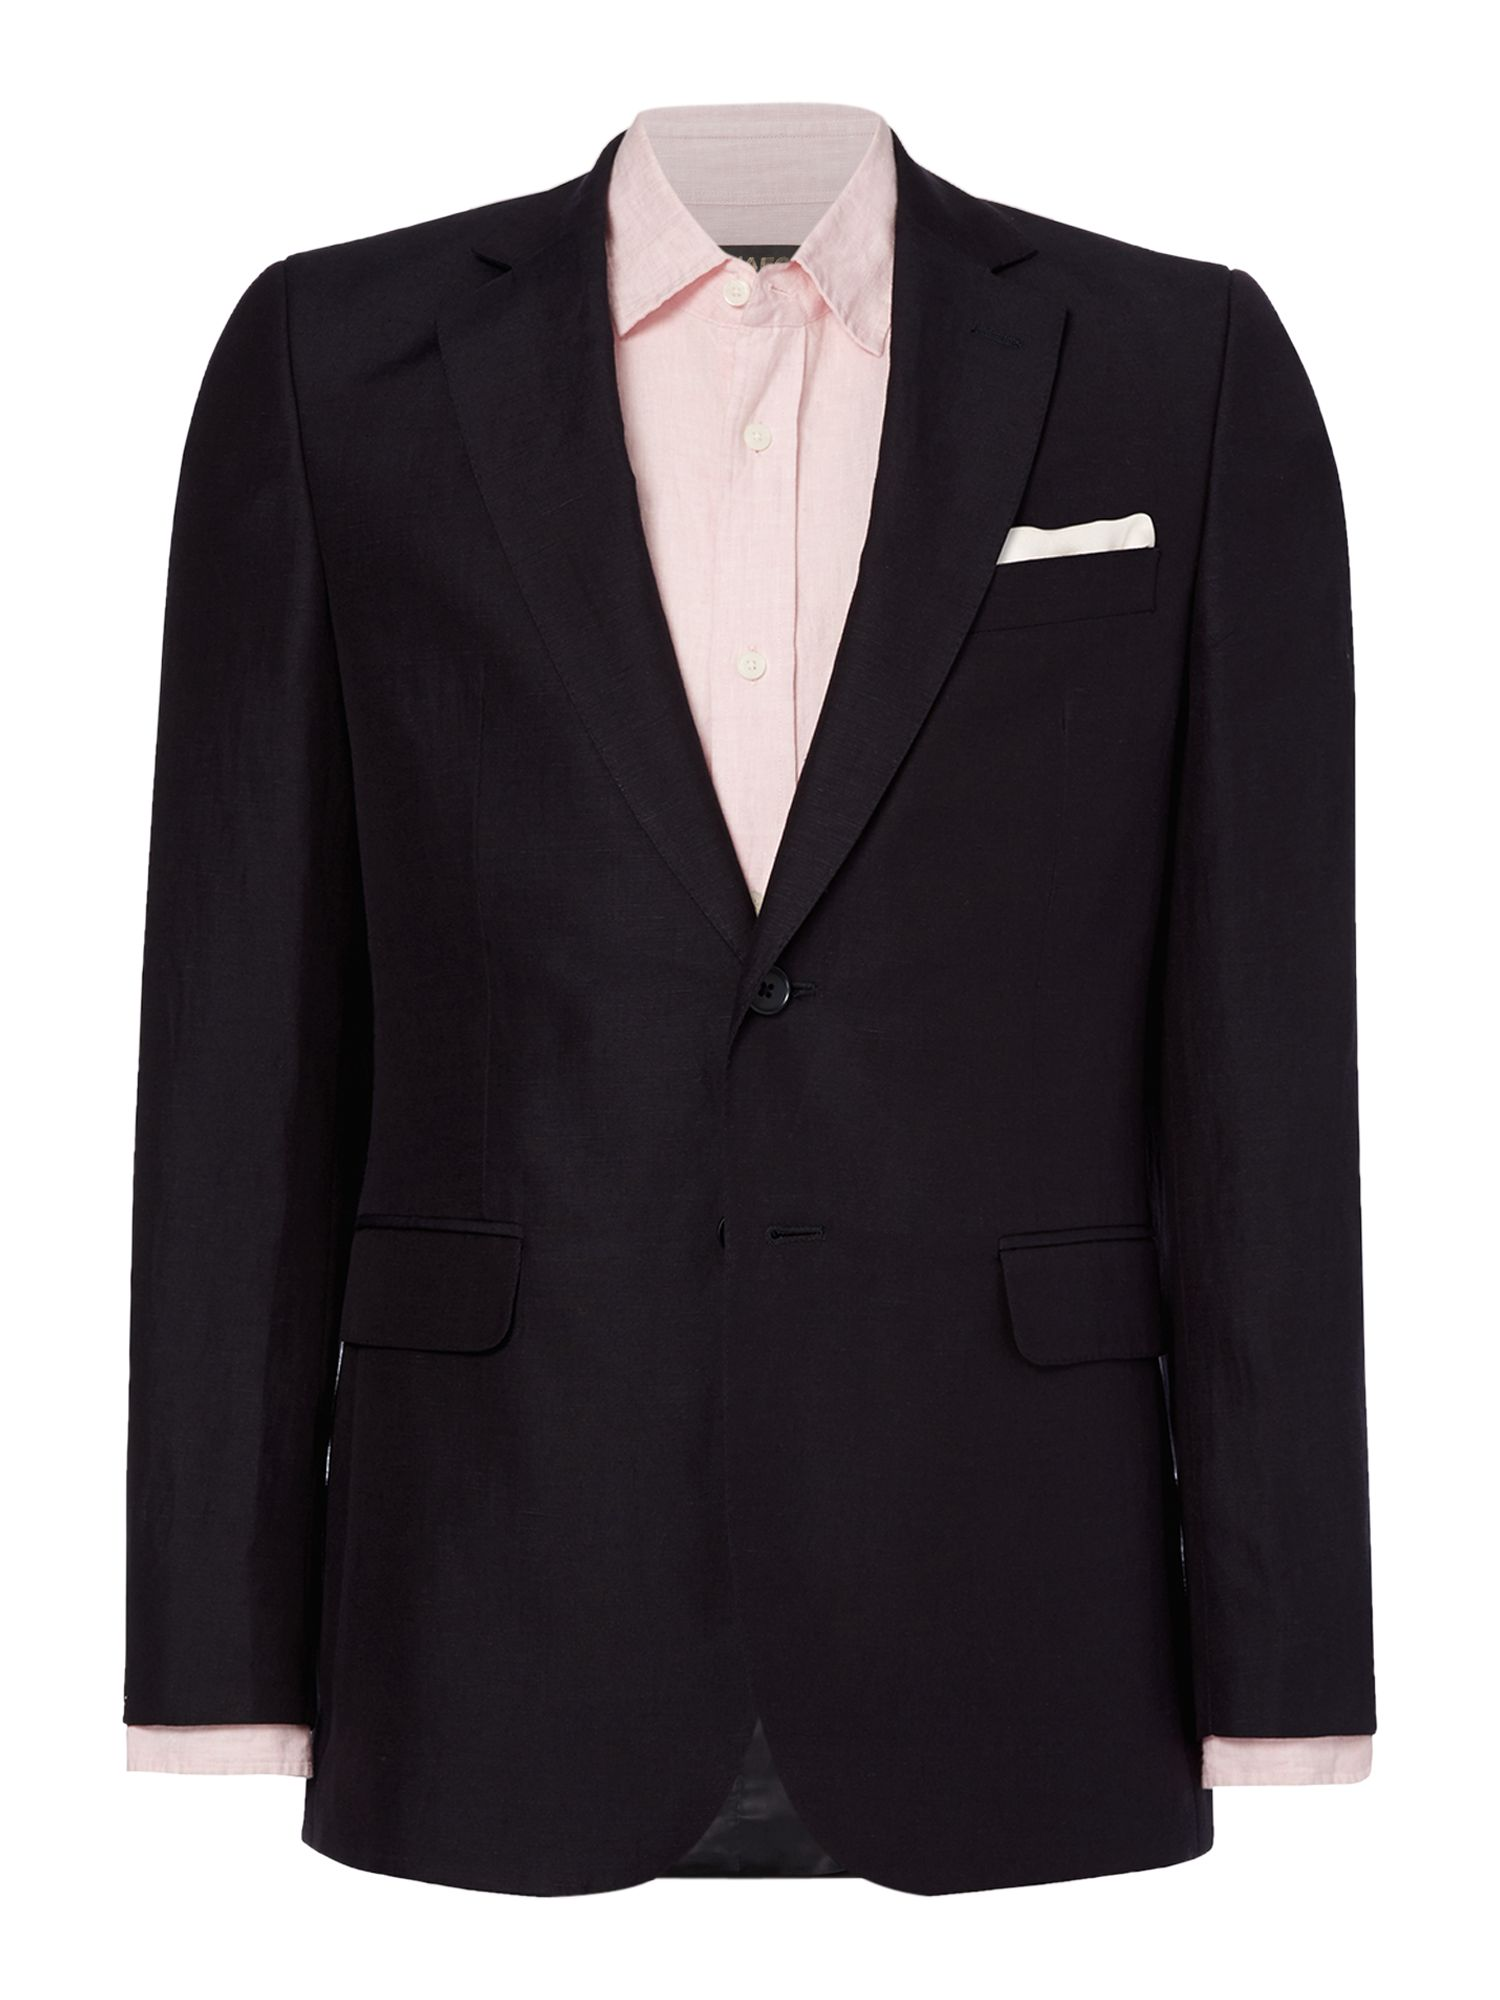 Notch lapel single breasted suit jacket